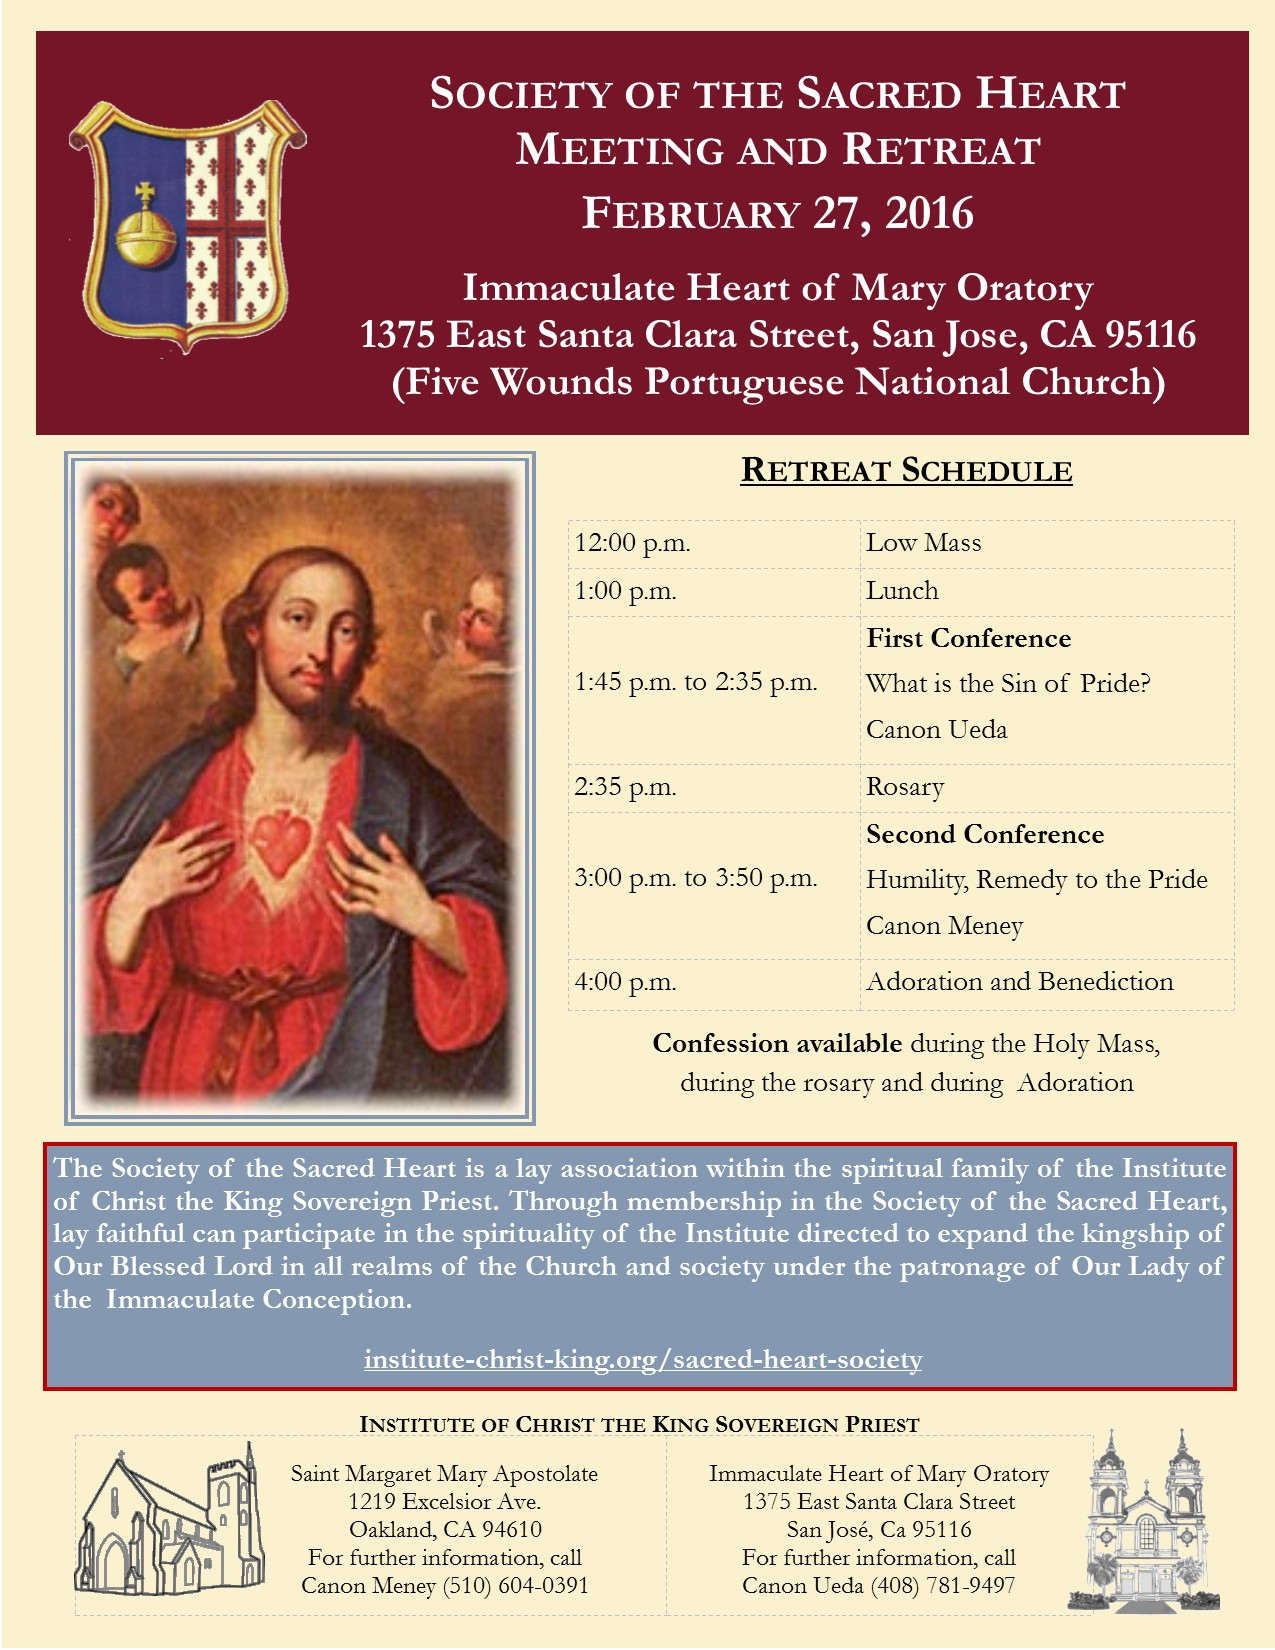 San Francisco Bay Area Society of the Sacred Heart Meeting and Retreat